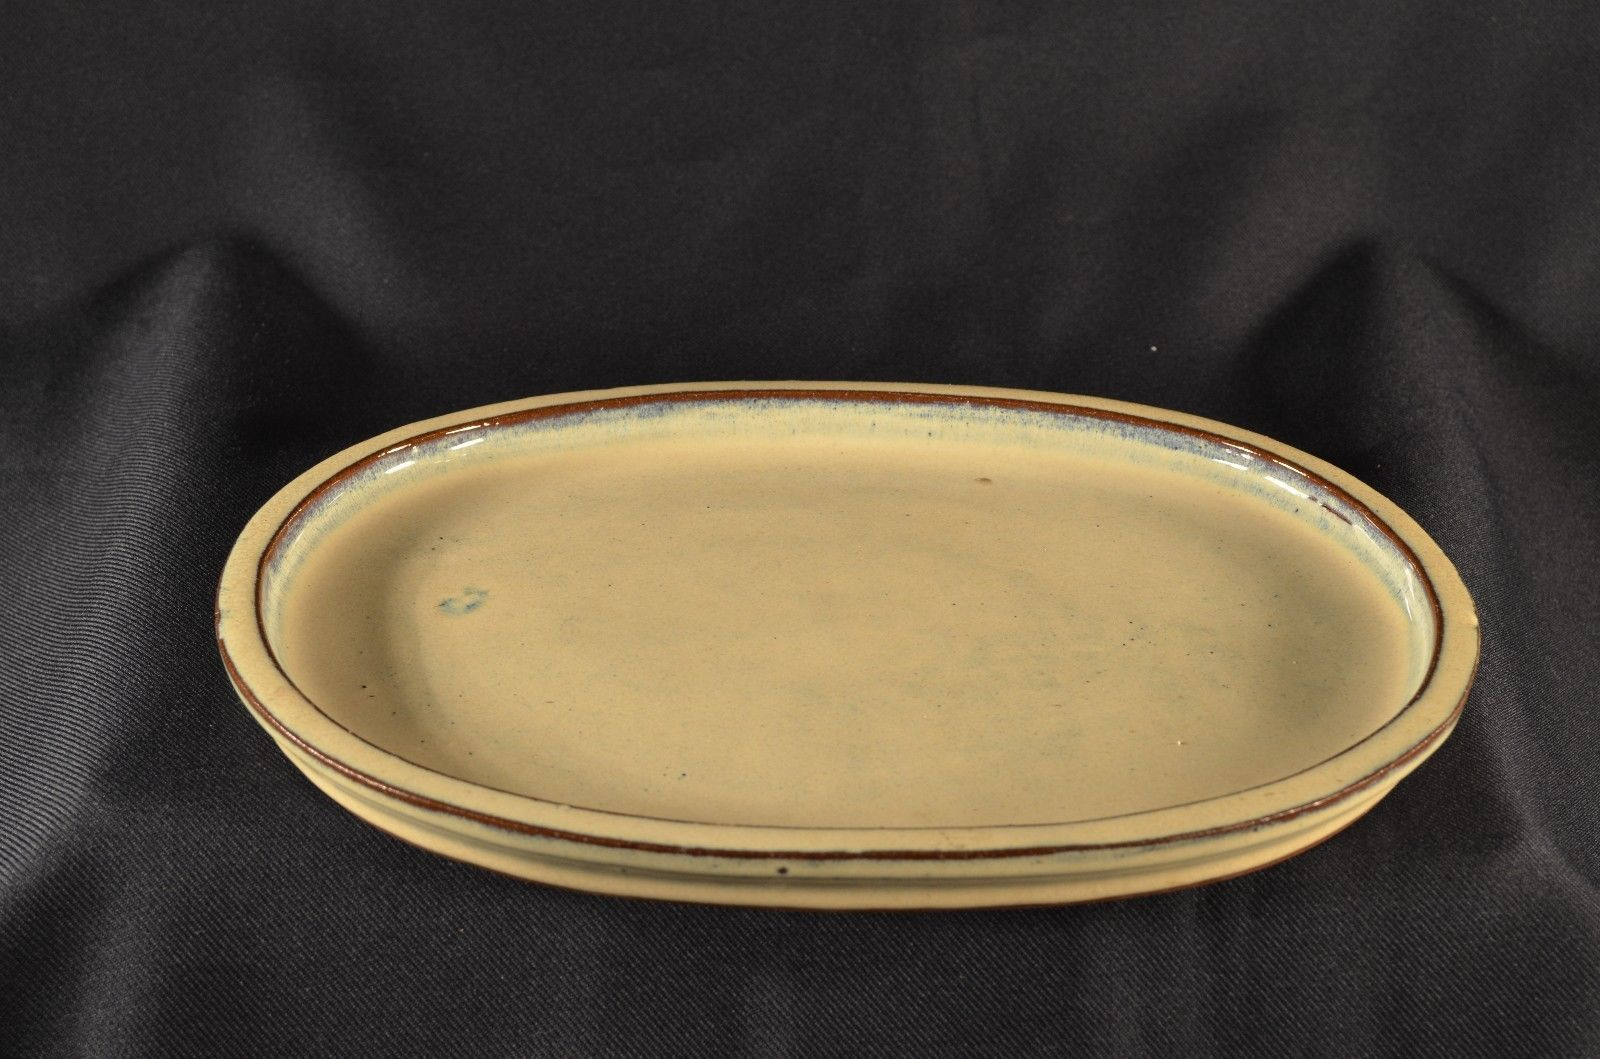 7 size beige,hexagon hard to find! Bonsai pot with matching tray